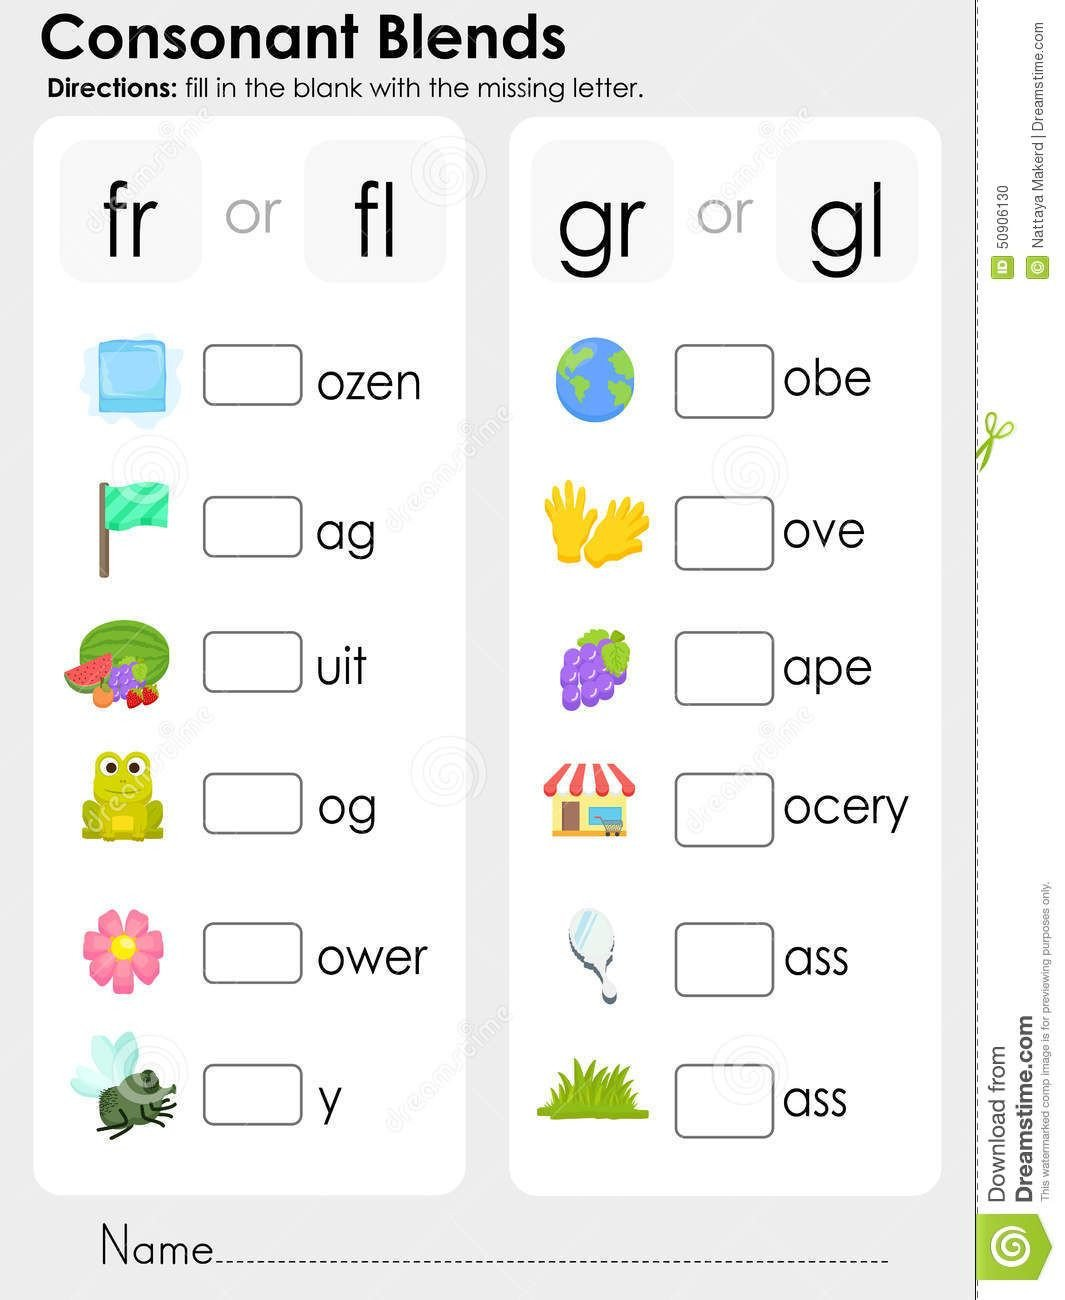 2nd Grade Consonant Blends Worksheets Consonant Blends Missing Letter Worksheet for Education